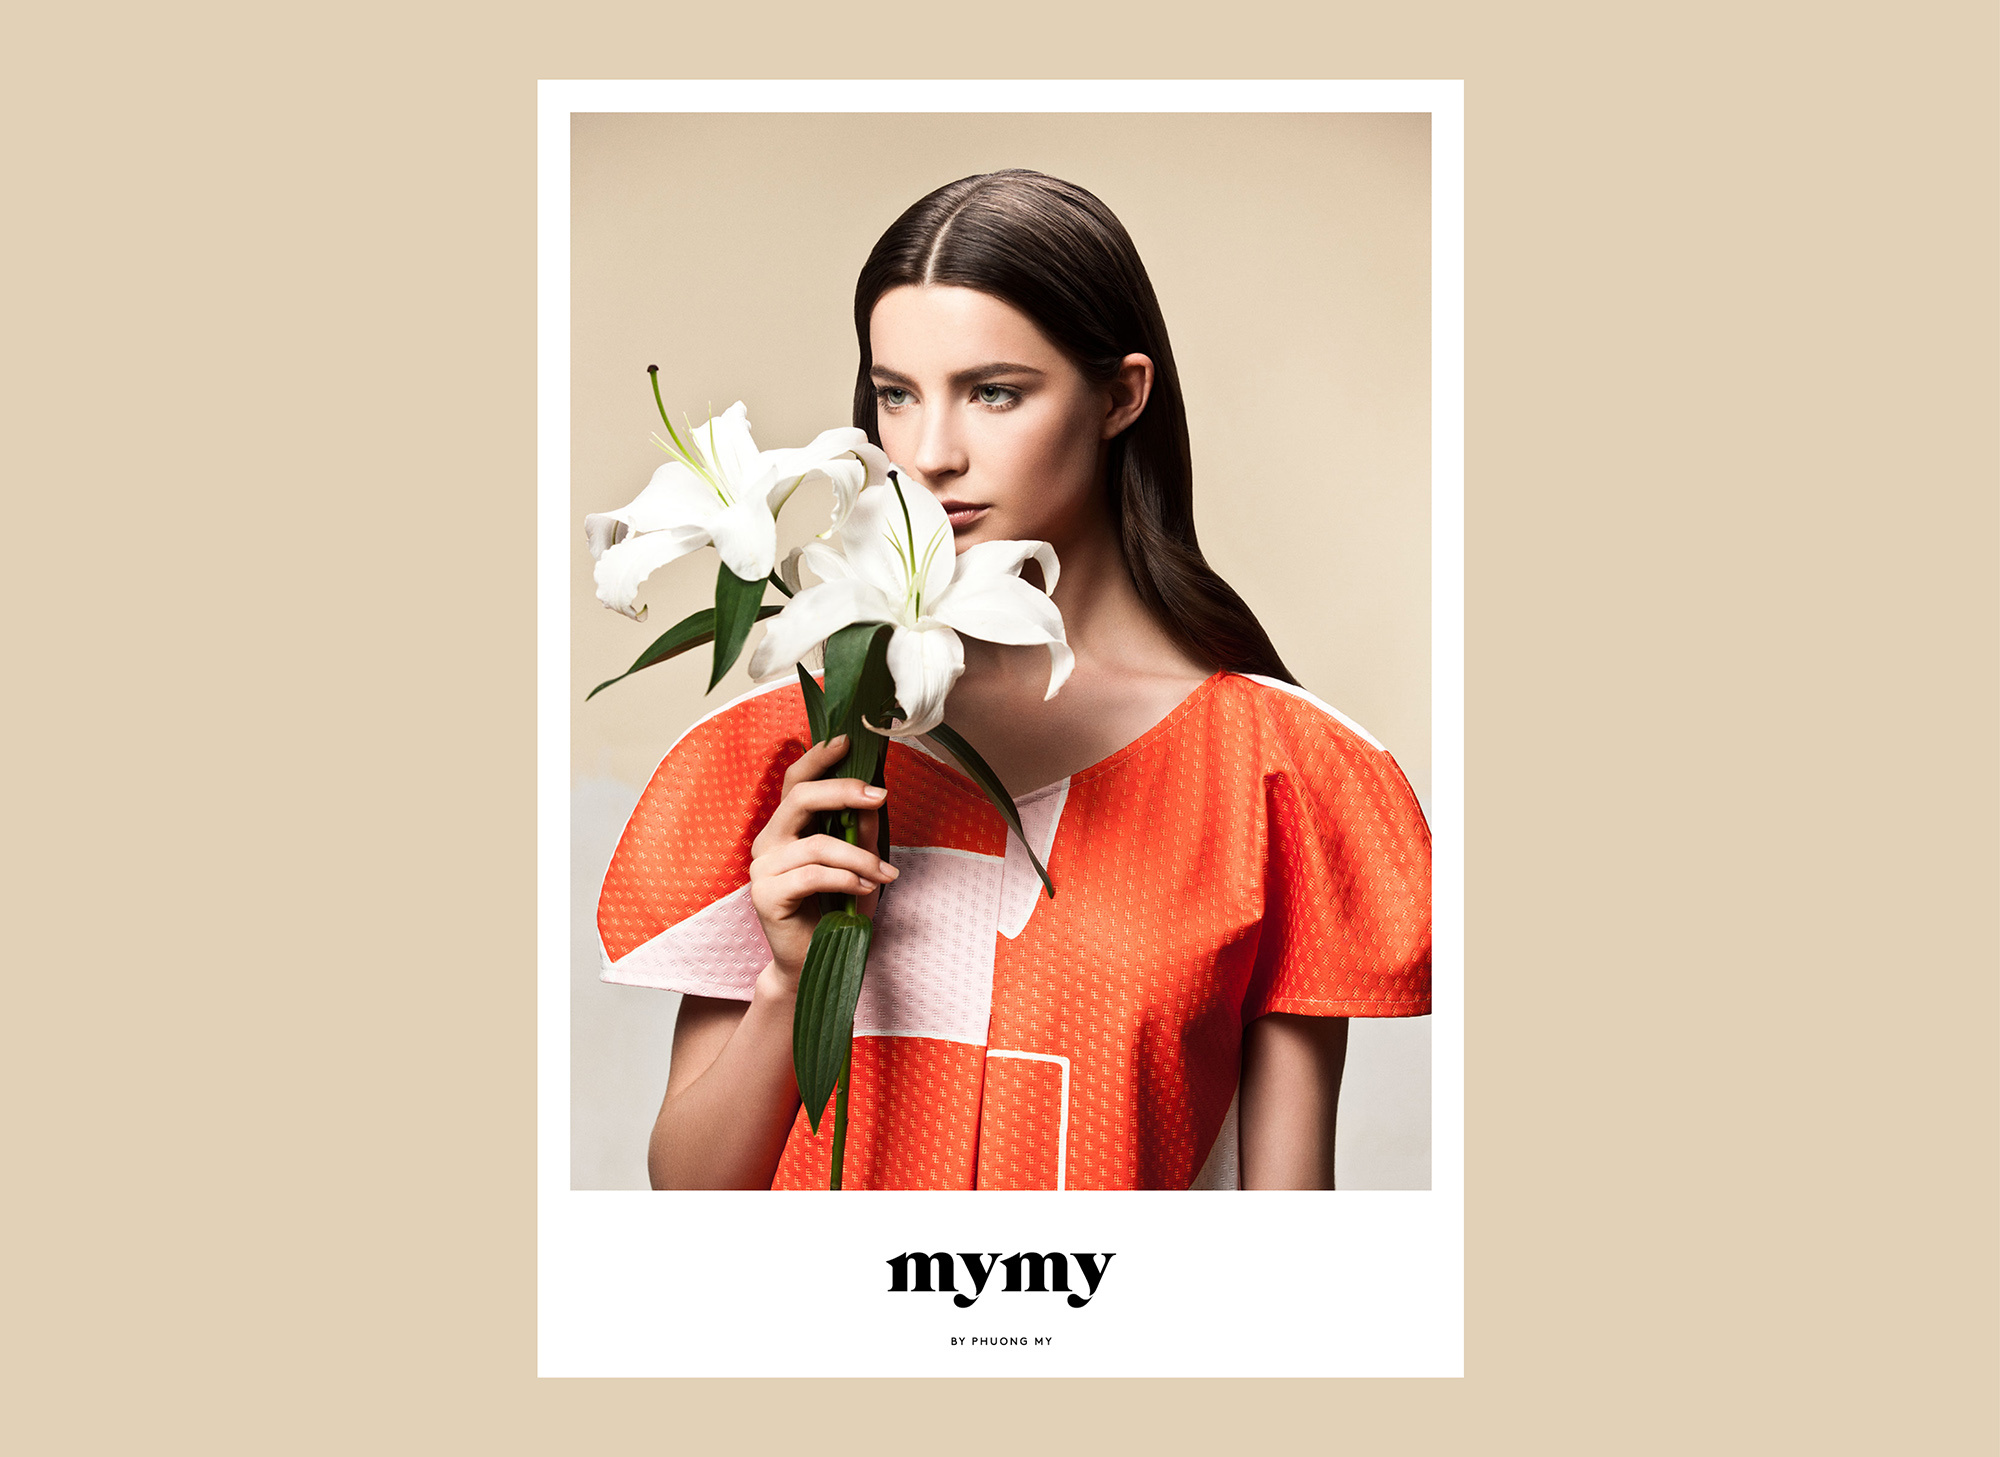 Image of a woman smelling lily's wearing an orange top. MYMY projecy.